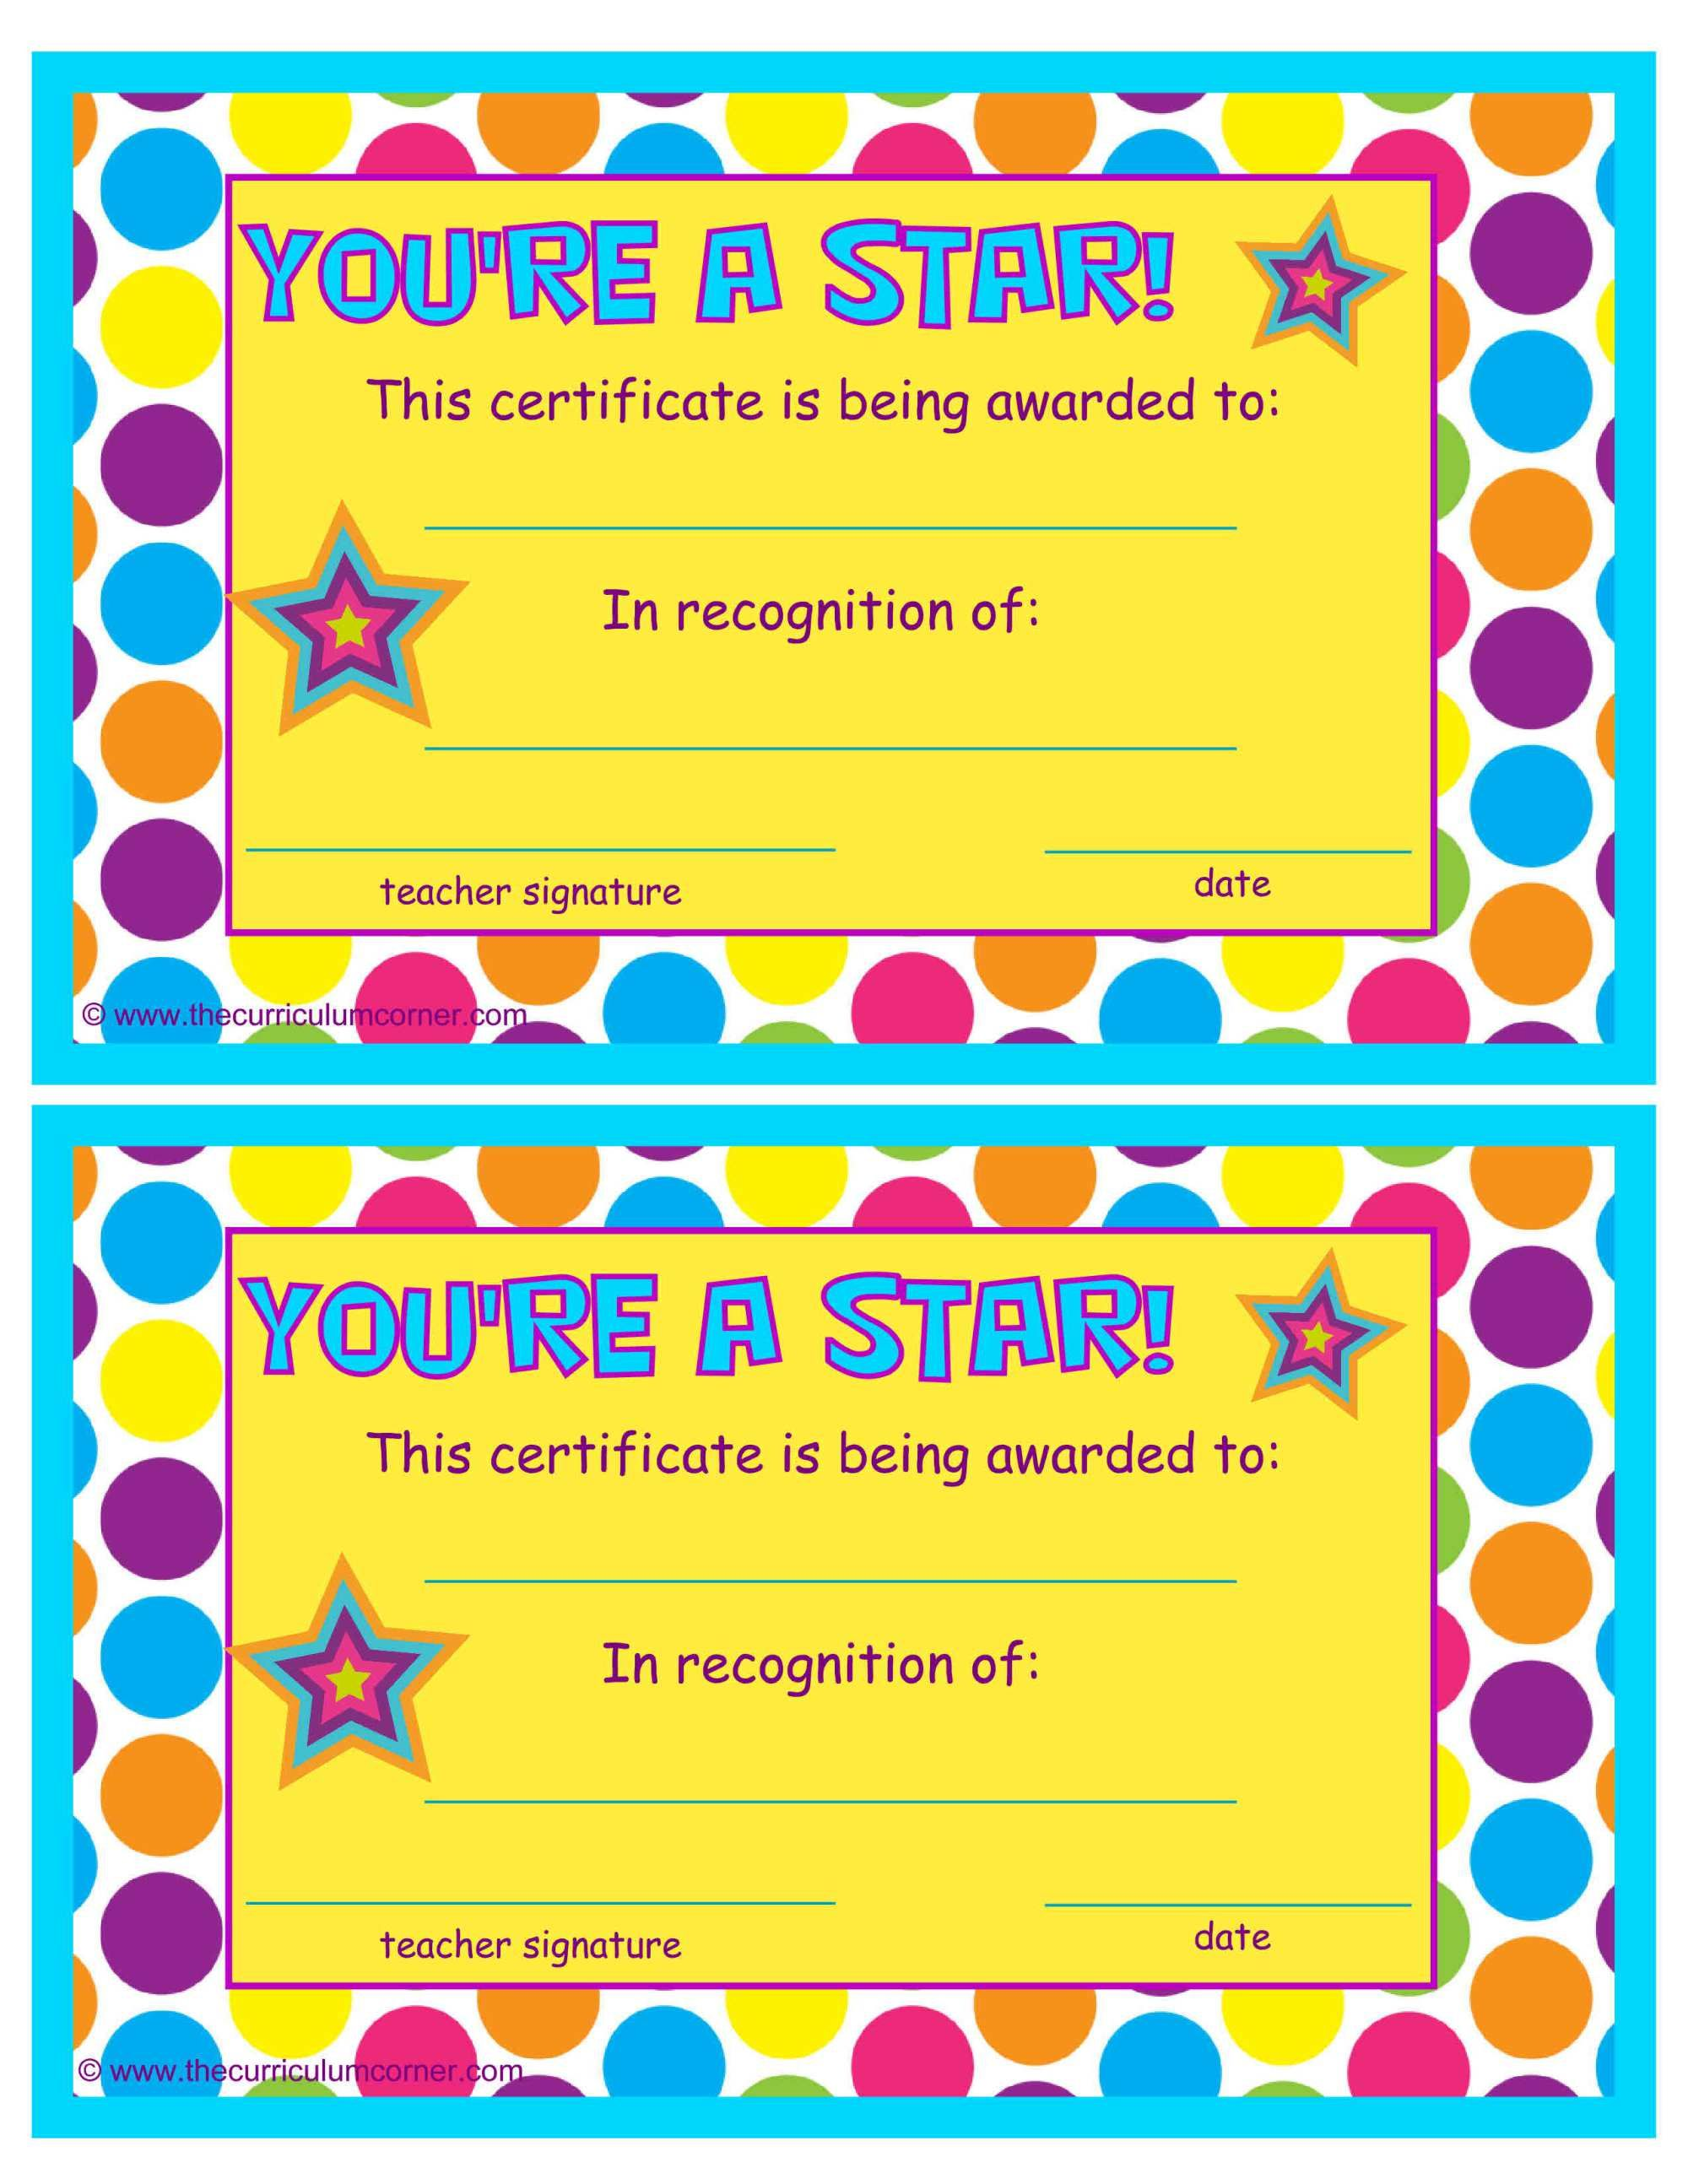 Youre a star end of the year certificates certificate youre a star end of the year certificate free from the curriculum corner xflitez Gallery